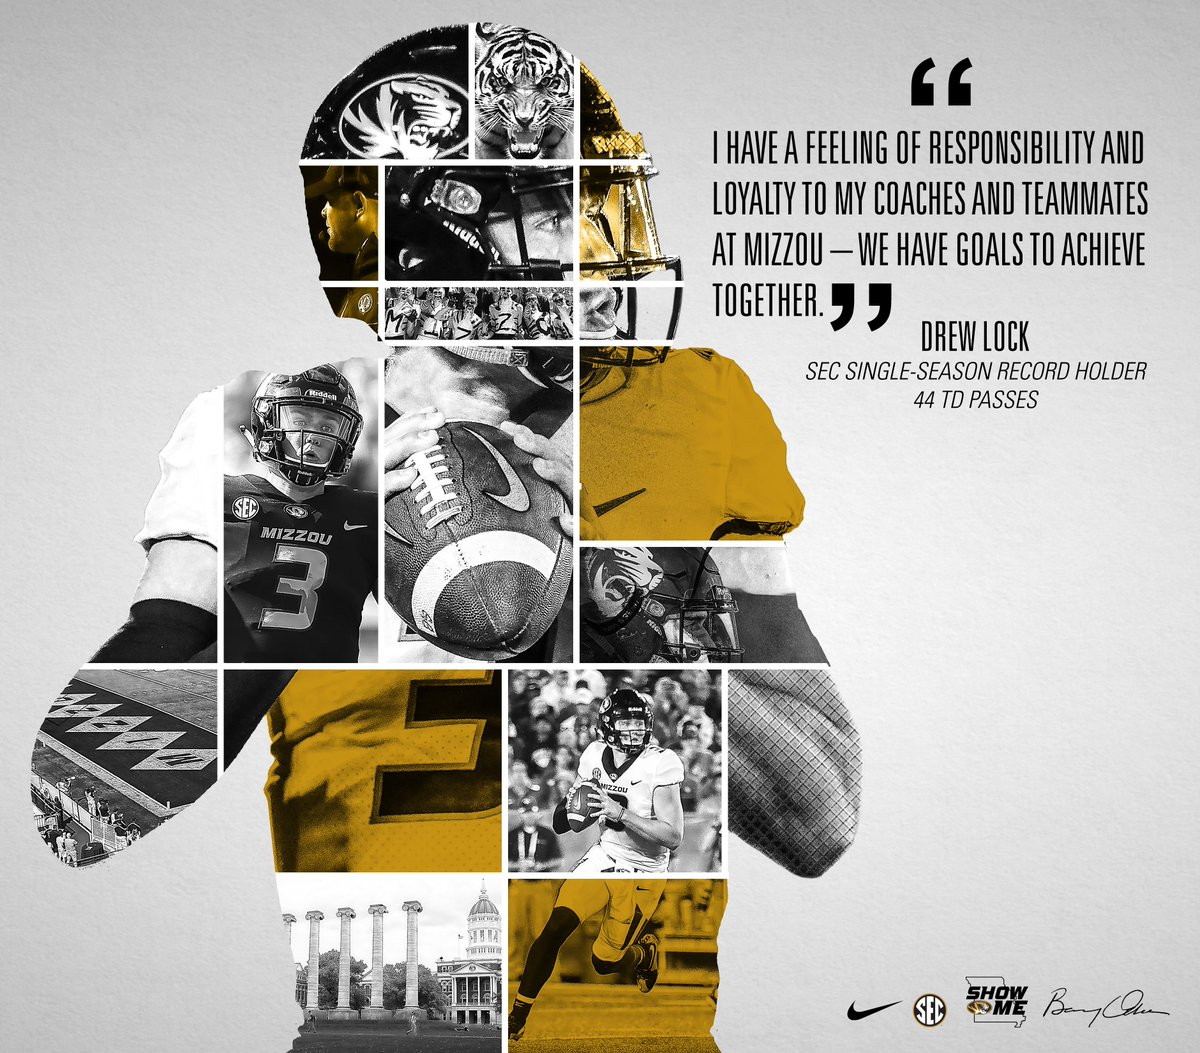 mizzou football on twitter we have goals to achieve together